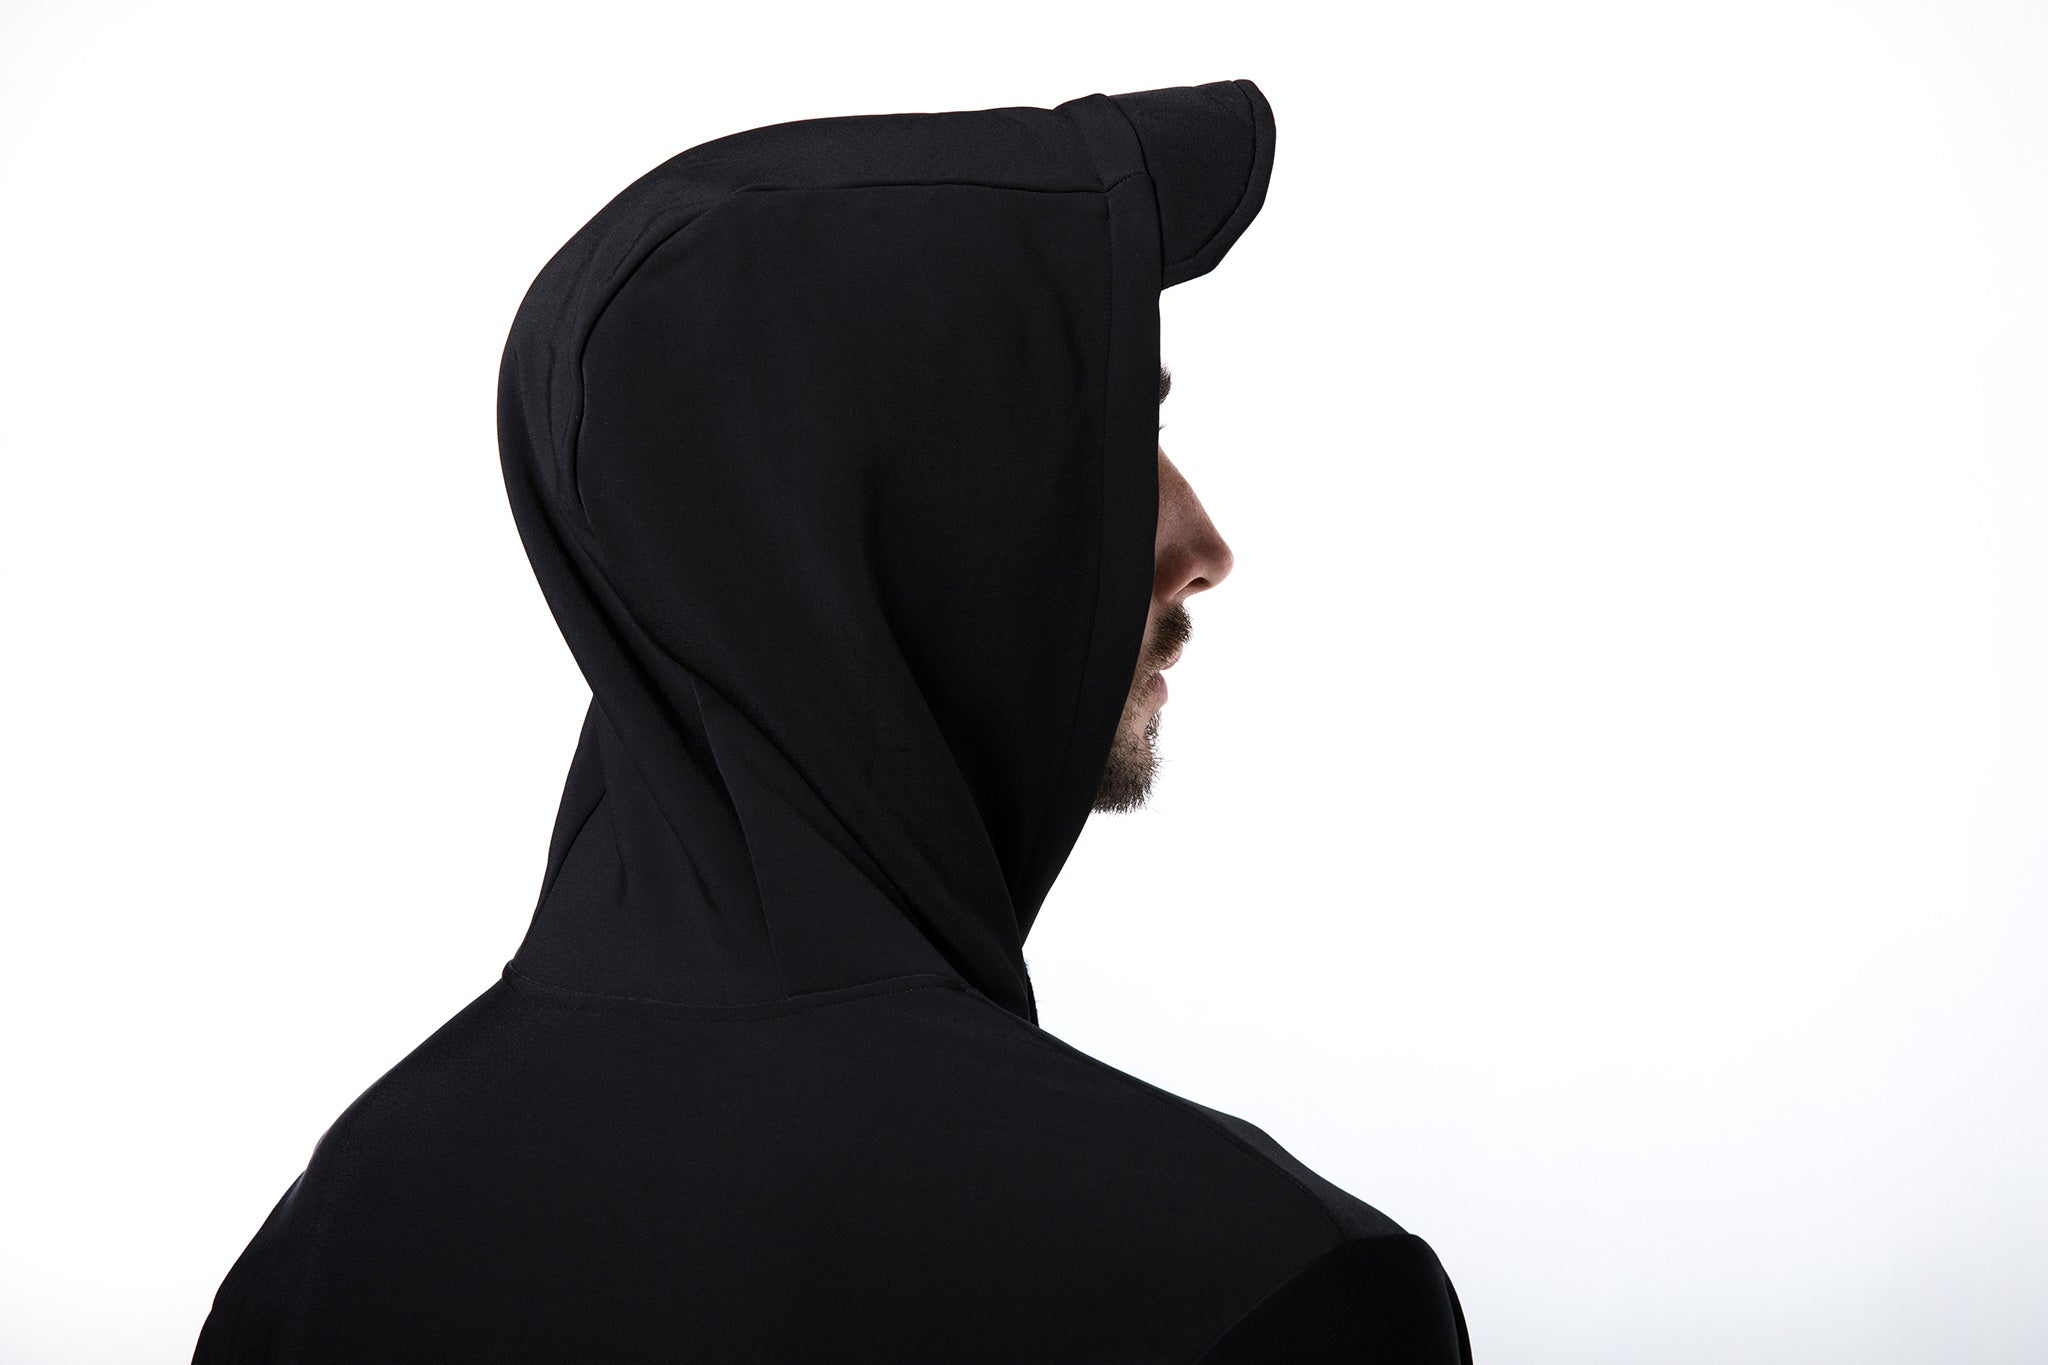 Hoodie with Visor in Black - Streetwear by Coroa Yoga